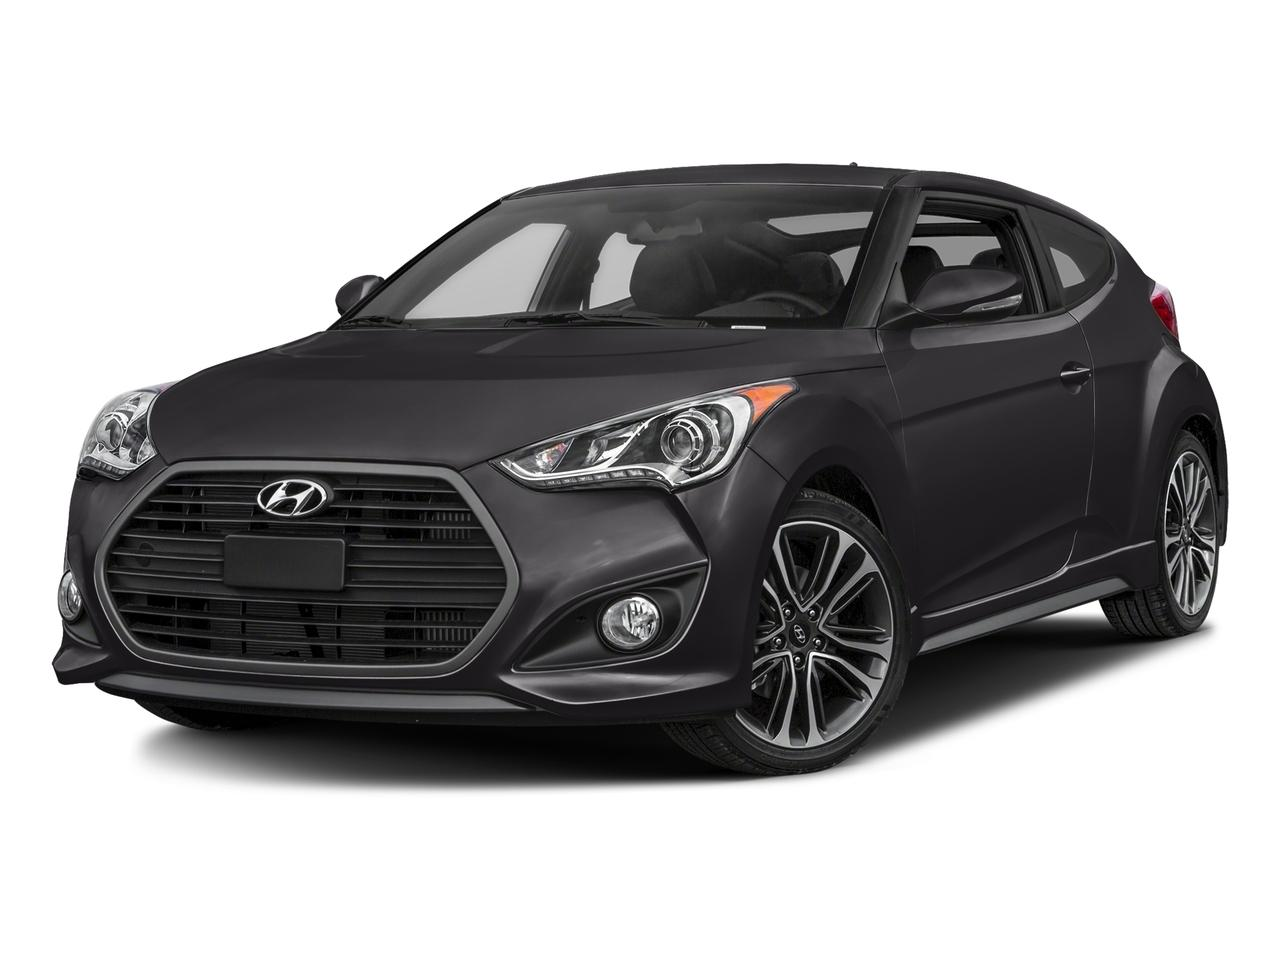 2017 Hyundai Veloster Vehicle Photo in Oklahoma City, OK 73114